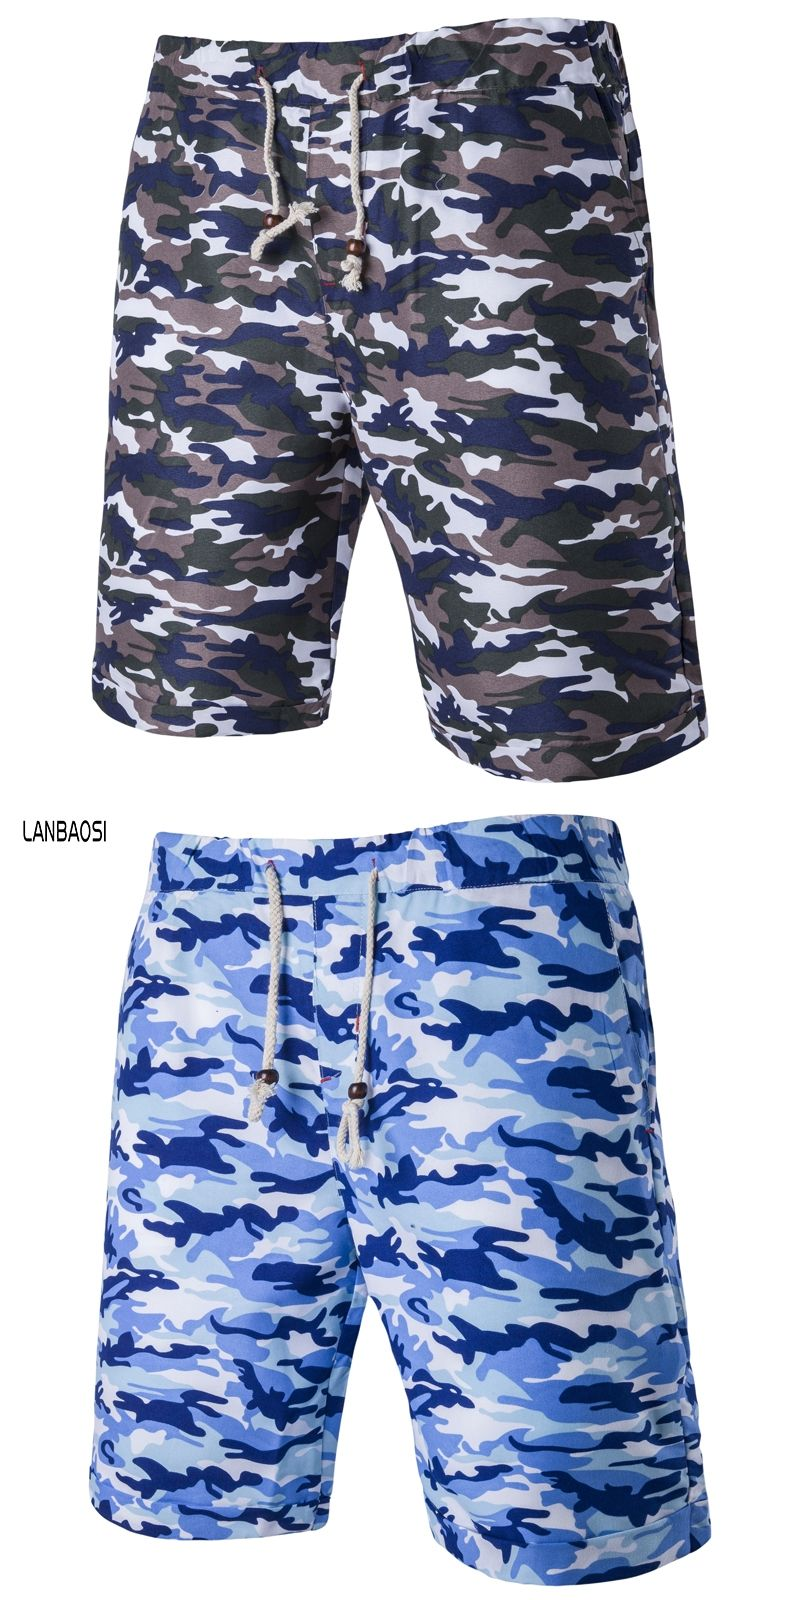 b706ff1ba5a462 Mens Board Shorts Summer Surfing Quick-drying Shorts Loose Beach Shorts  Swim Wear Swimwear Short Beach Wear Plus Size M-4XL